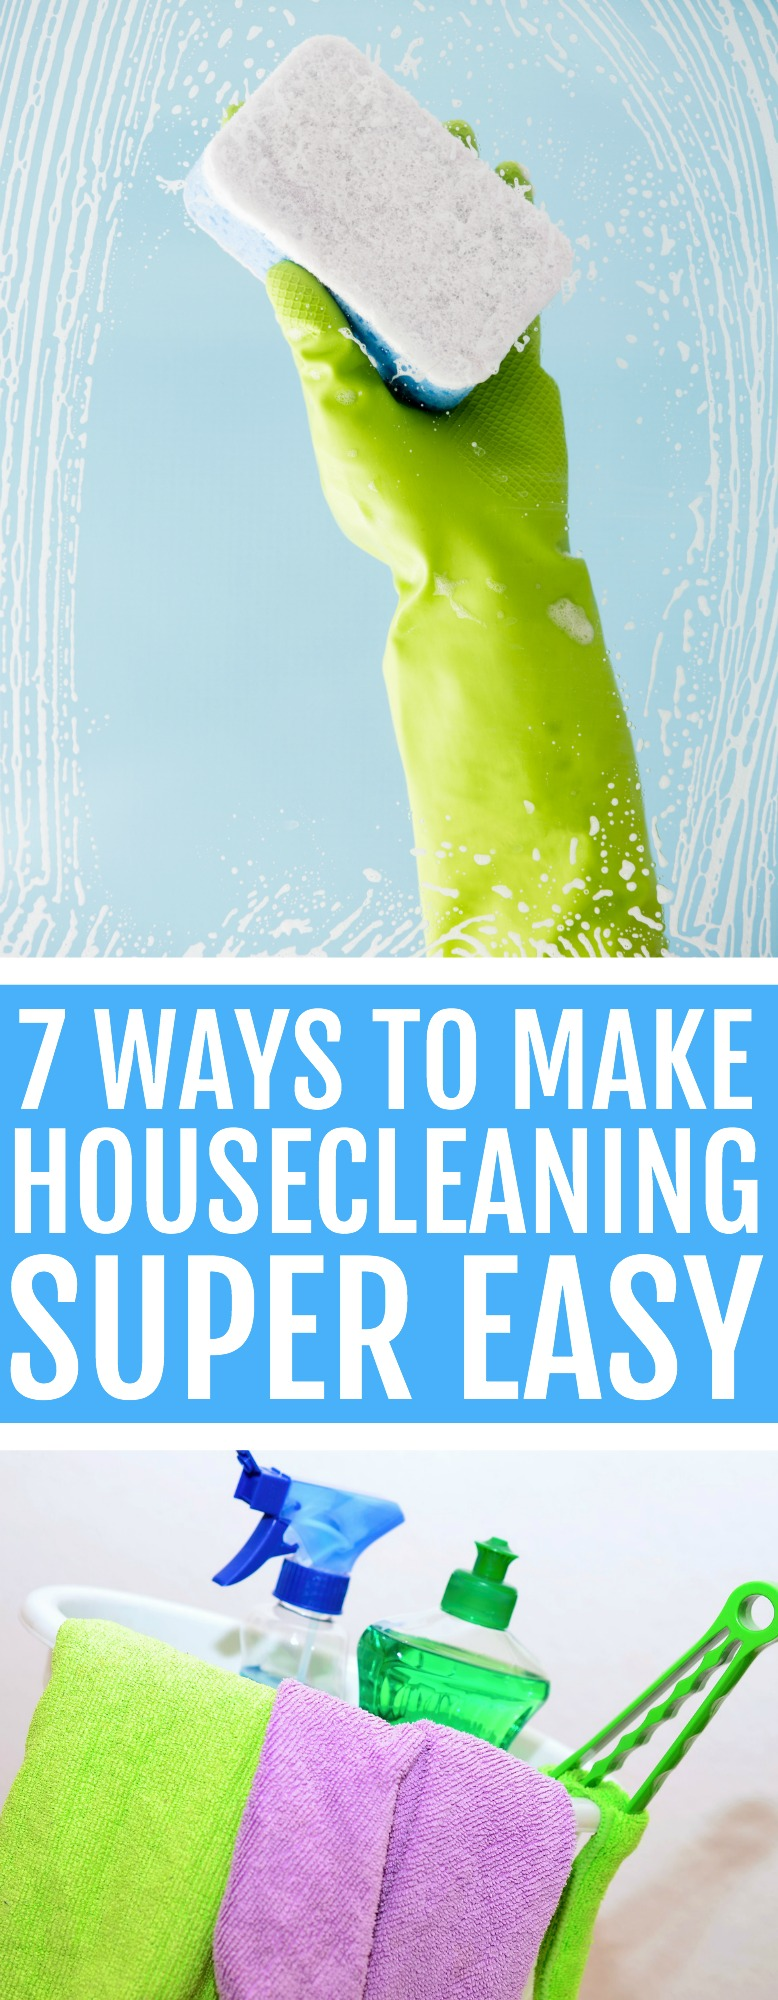 housecleaning easy